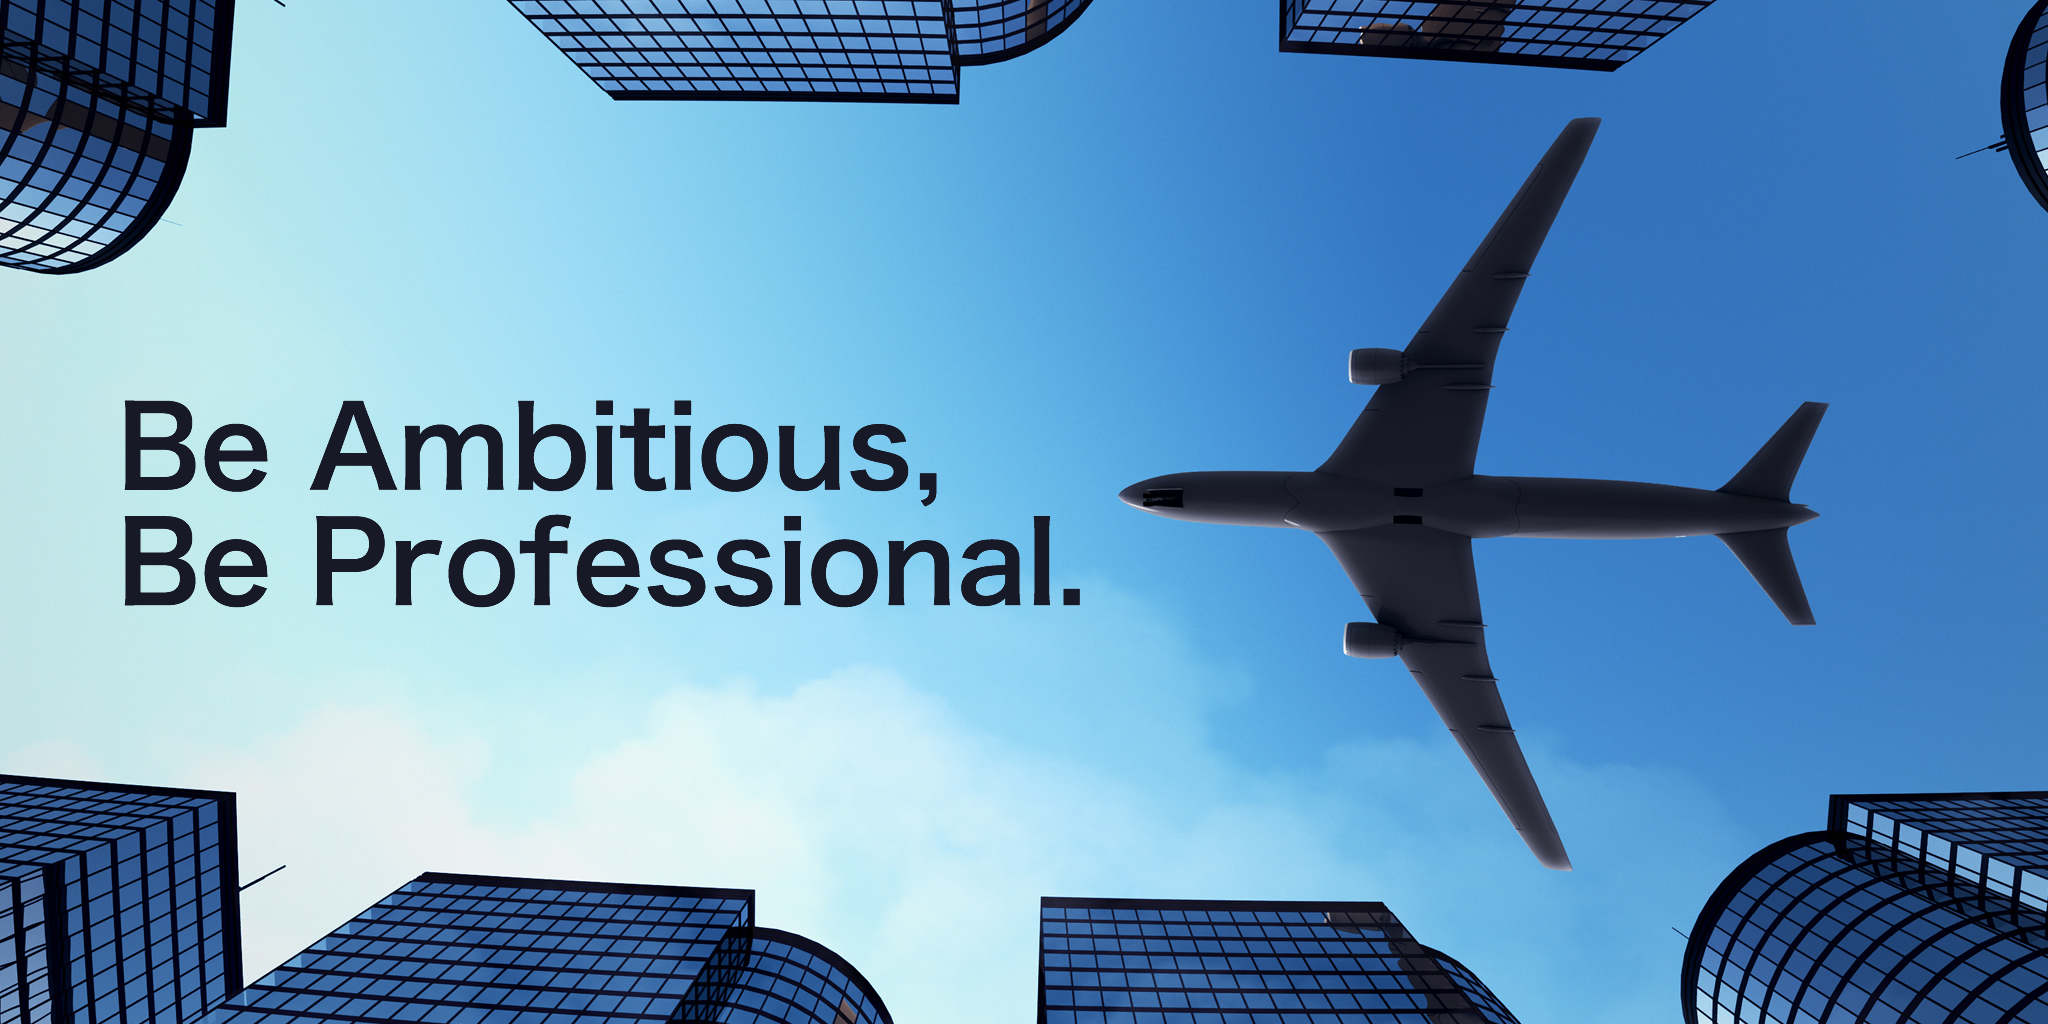 Be Ambitious,Be Professional.